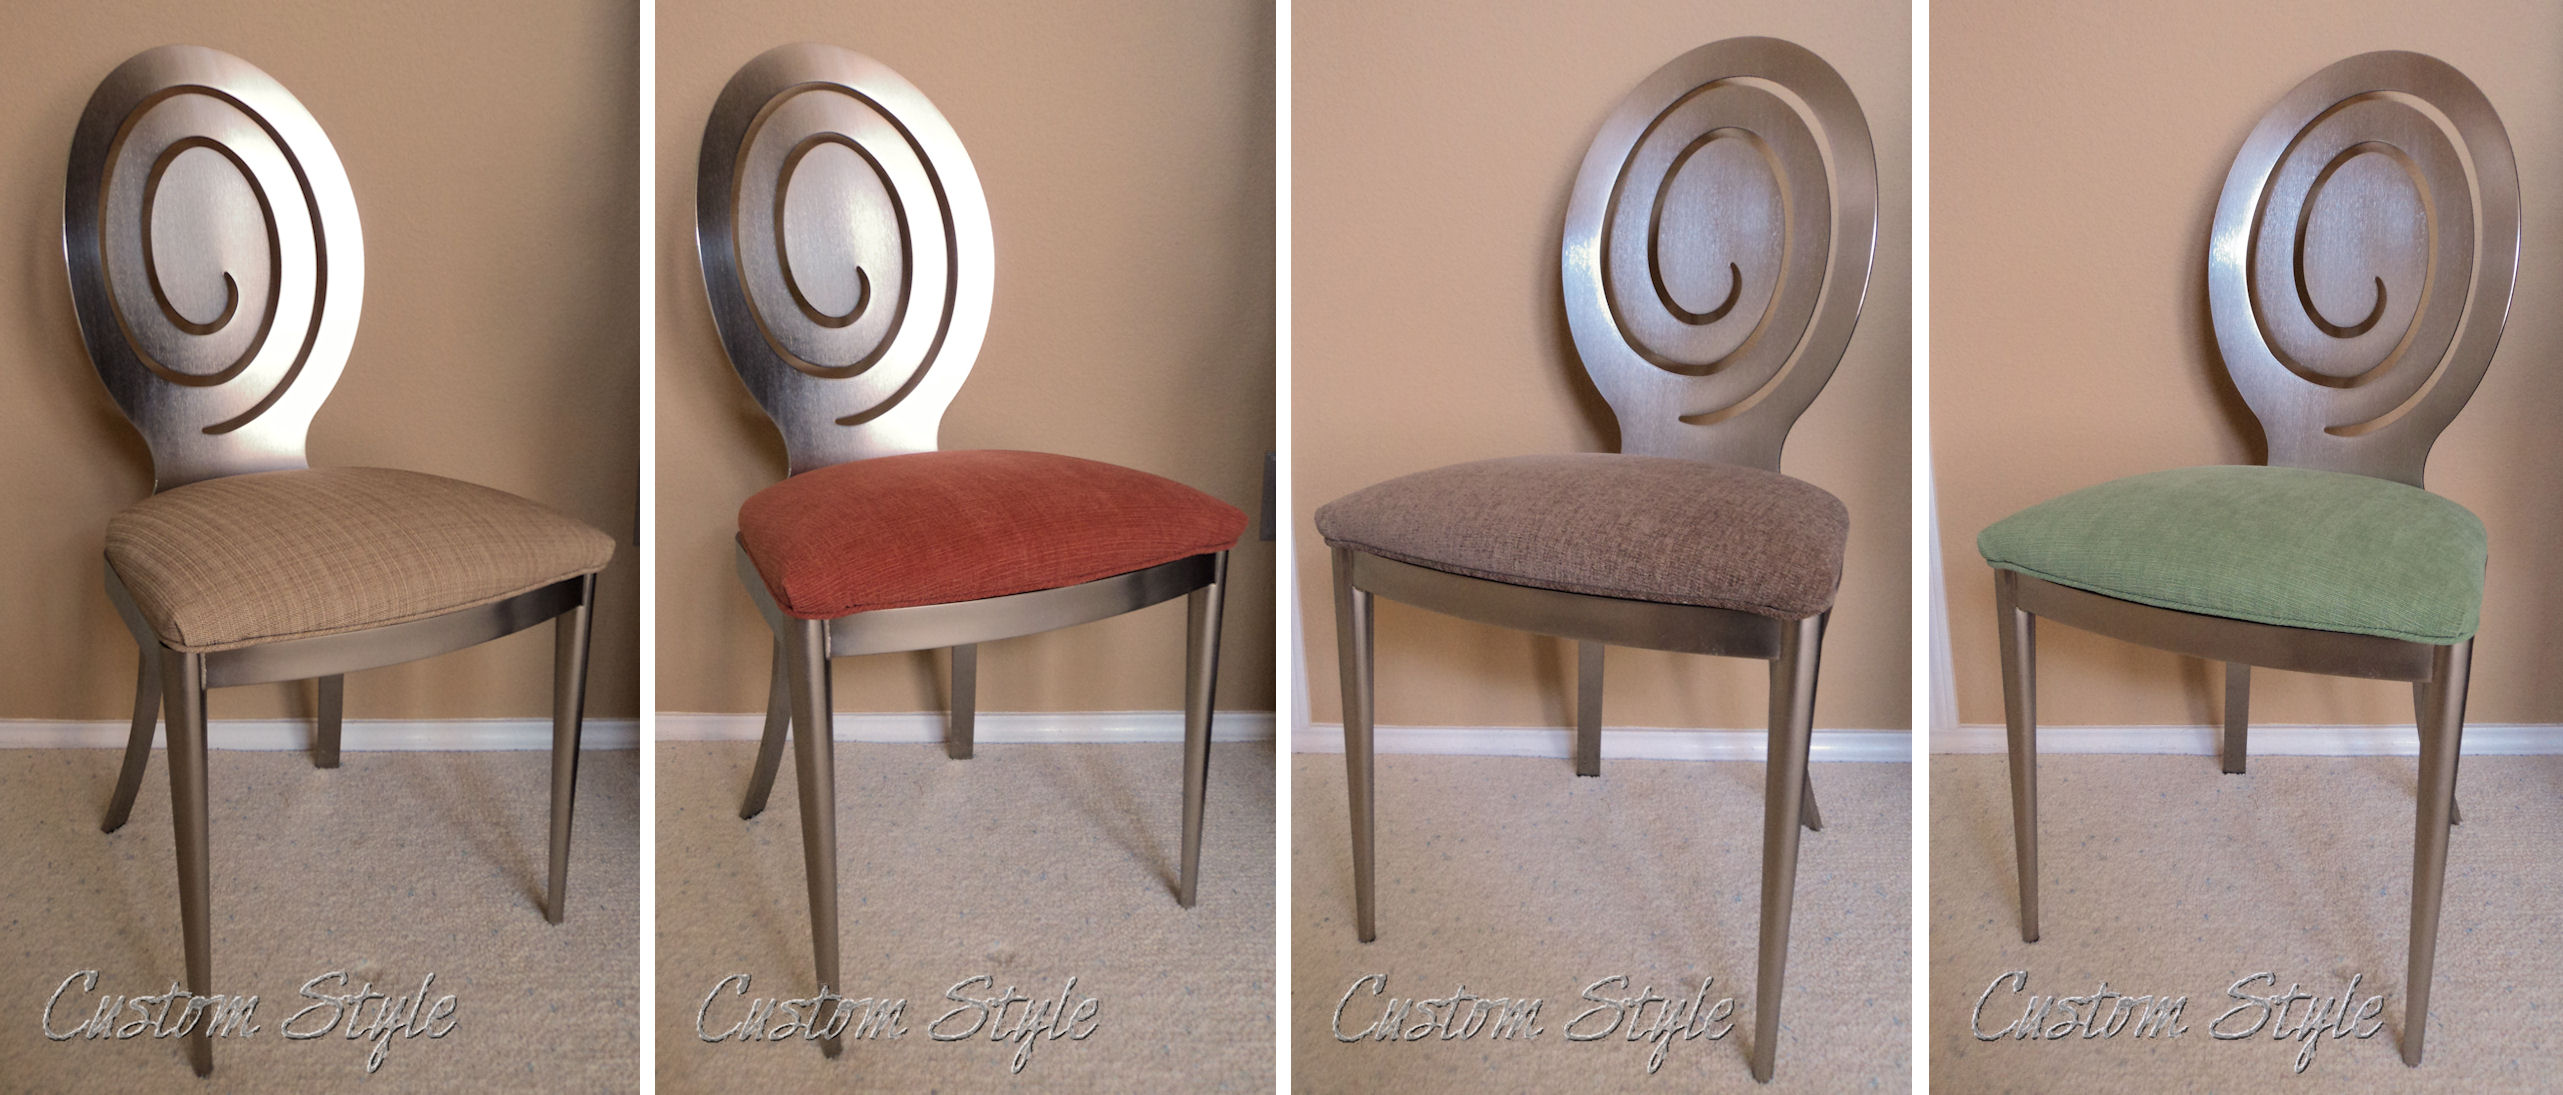 Reupholstering Dining Chair Cushions Custom StyleRecover Chair Pad   Ideasidea. Recover Chair Pad. Home Design Ideas